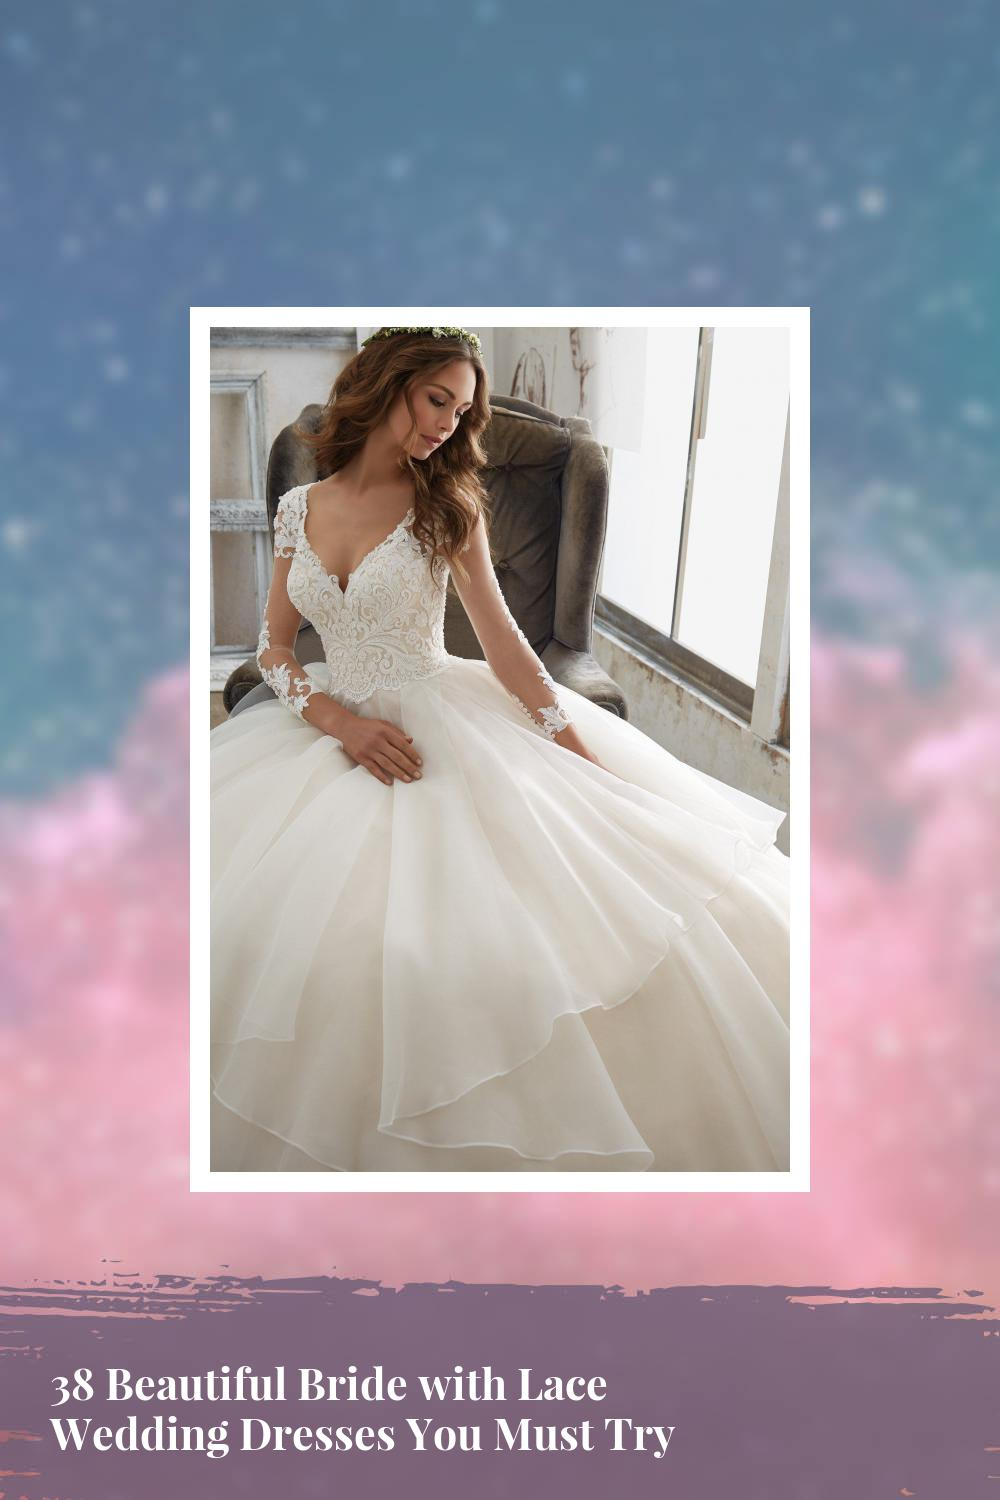 38 Beautiful Bride with Lace Wedding Dresses You Must Try 1